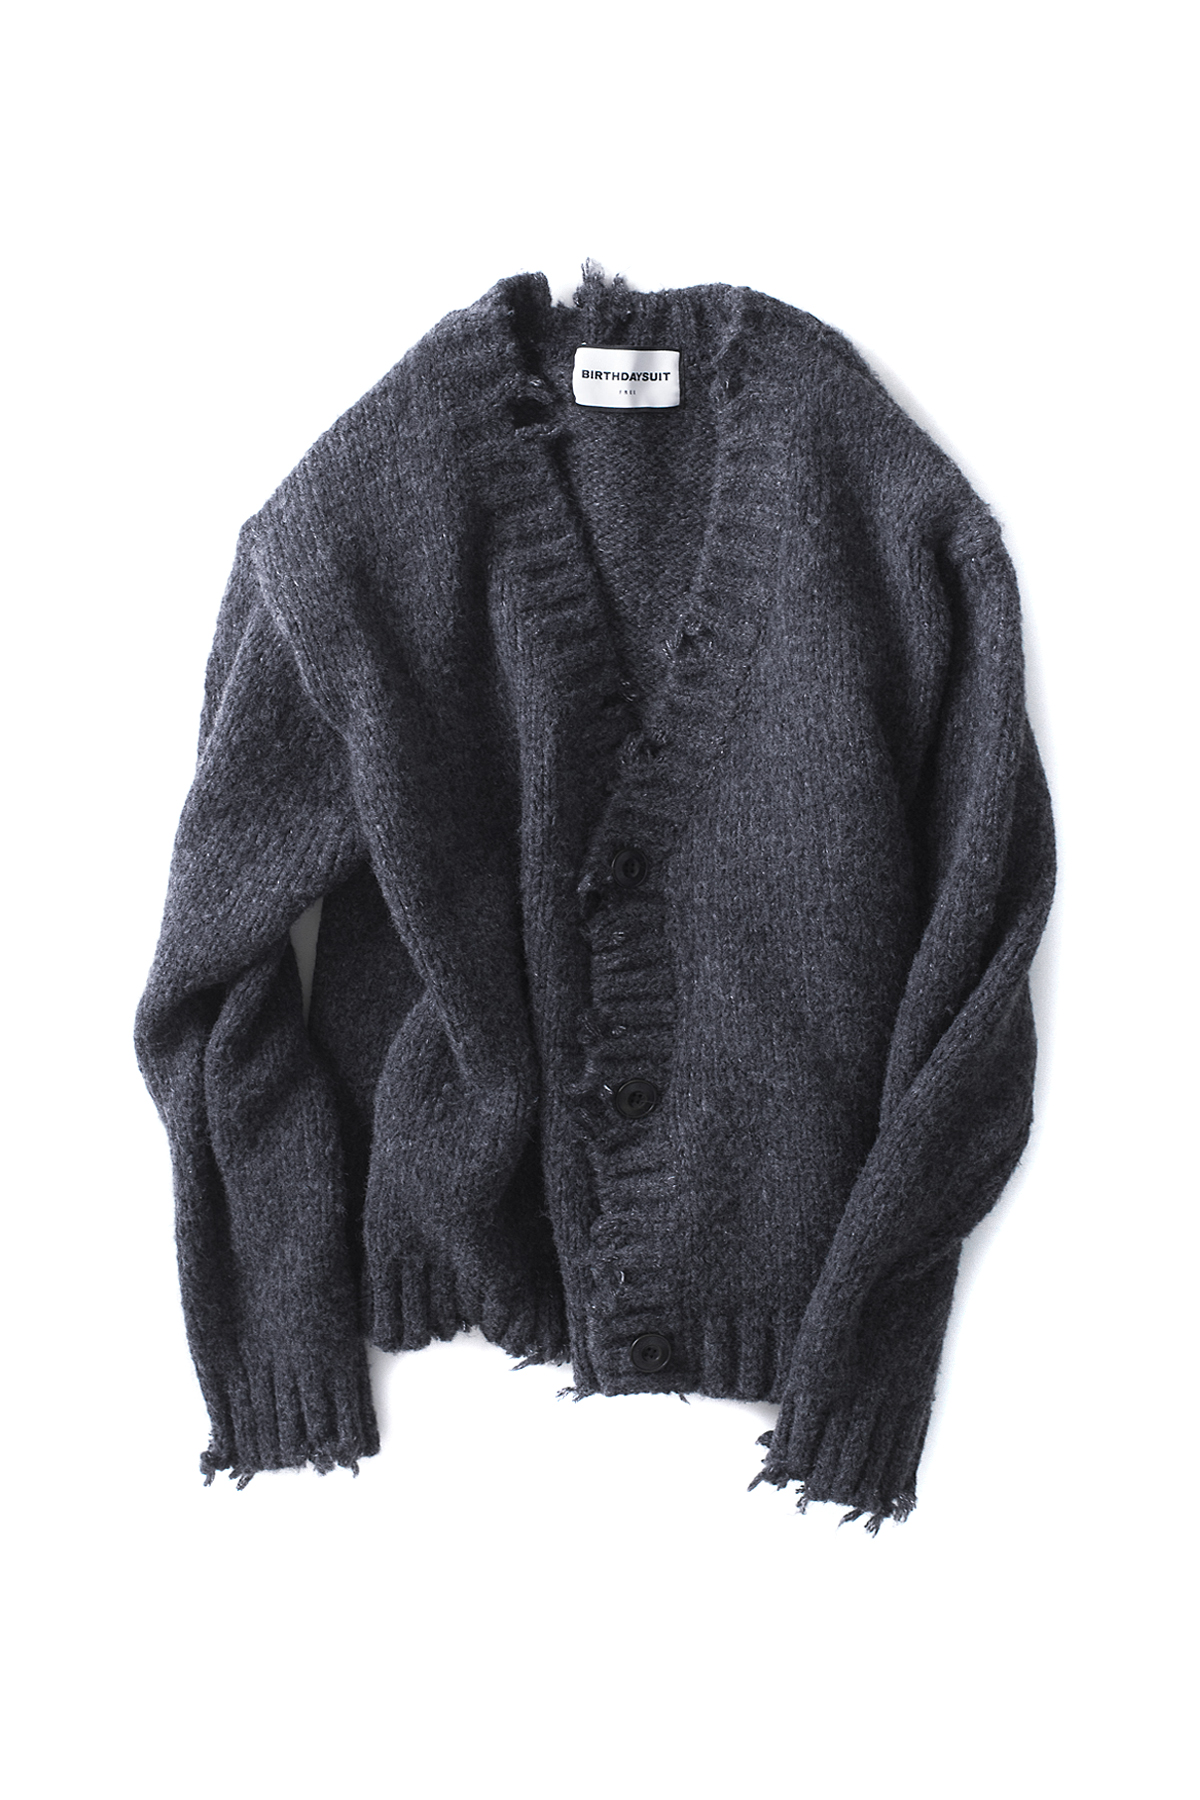 BIRTHDAYSUIT : Oversized Cardigan (Charcoal)